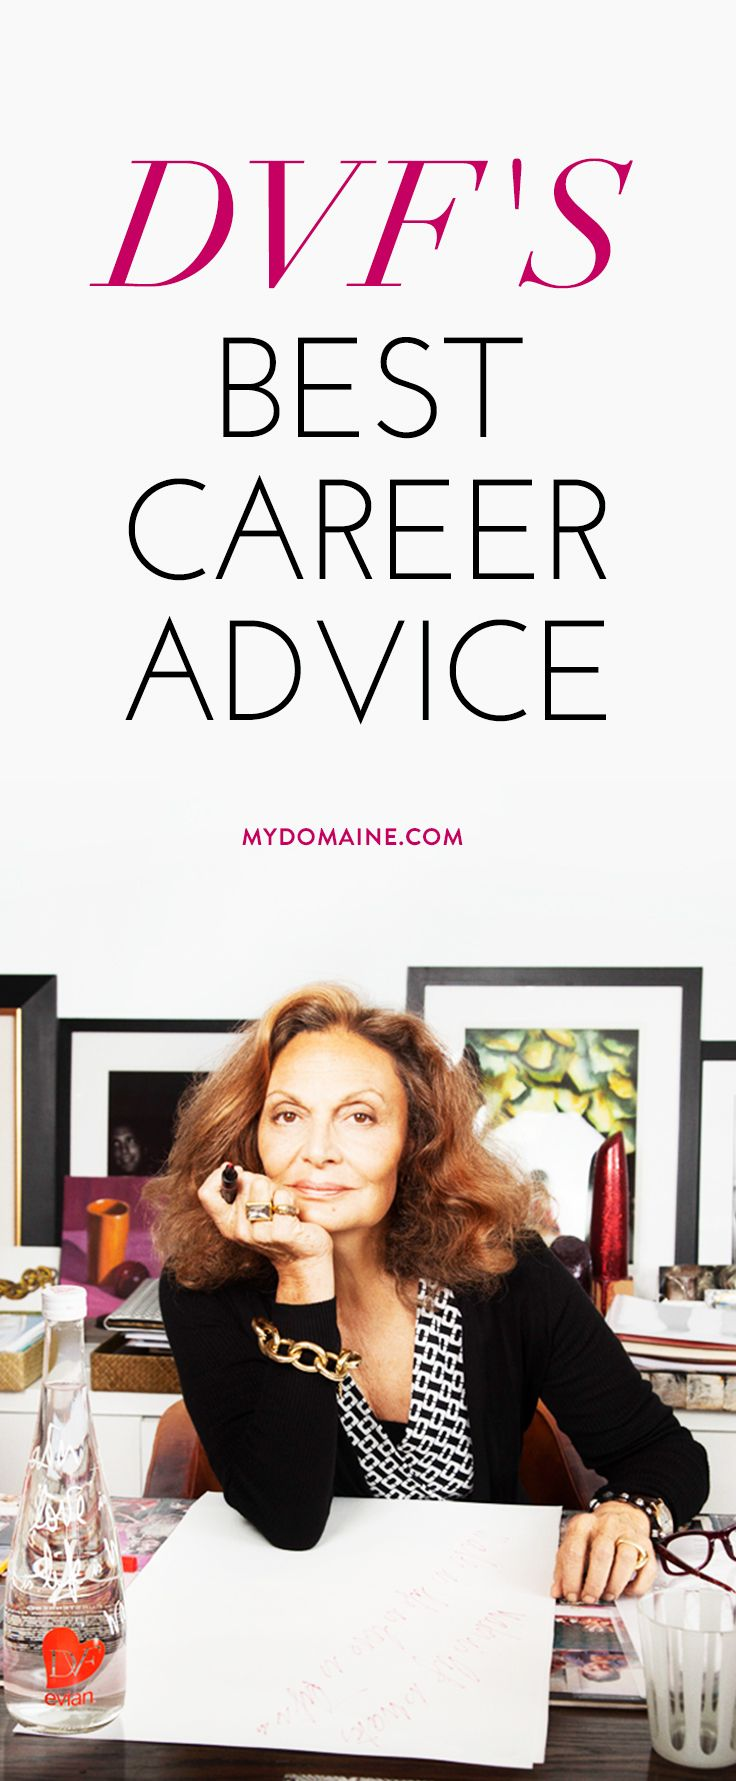 The best career advice, courtesy of Diane von Furstenberg